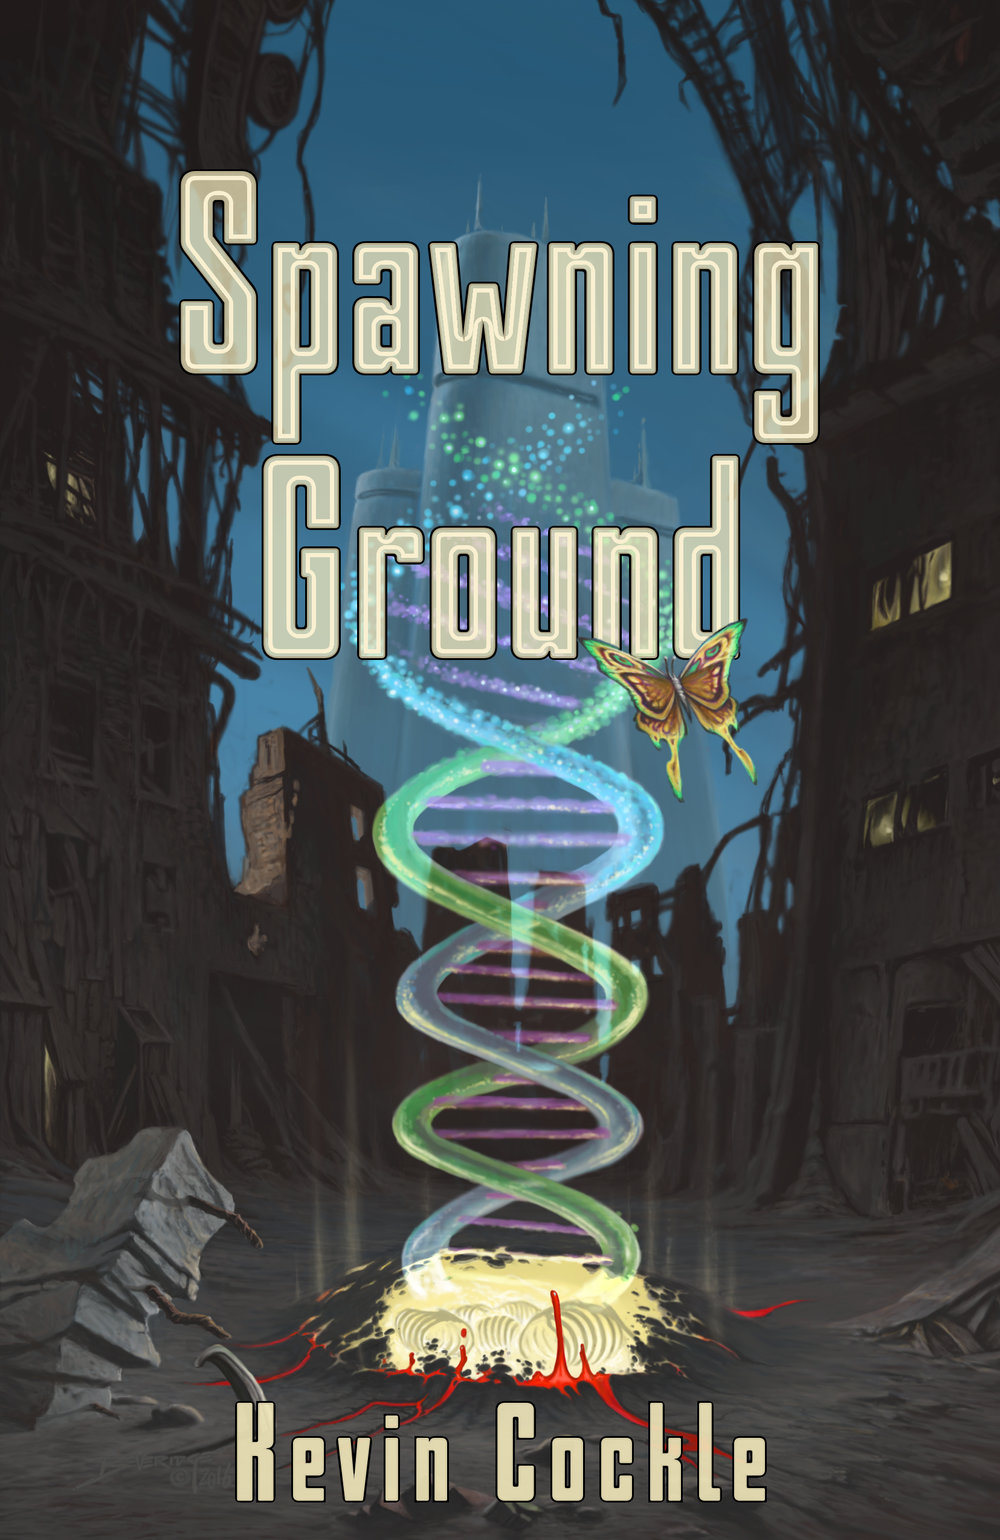 Spawning Groundby Kevin Cockle - Genetic perfection has a price that humanity may not be able to afford.